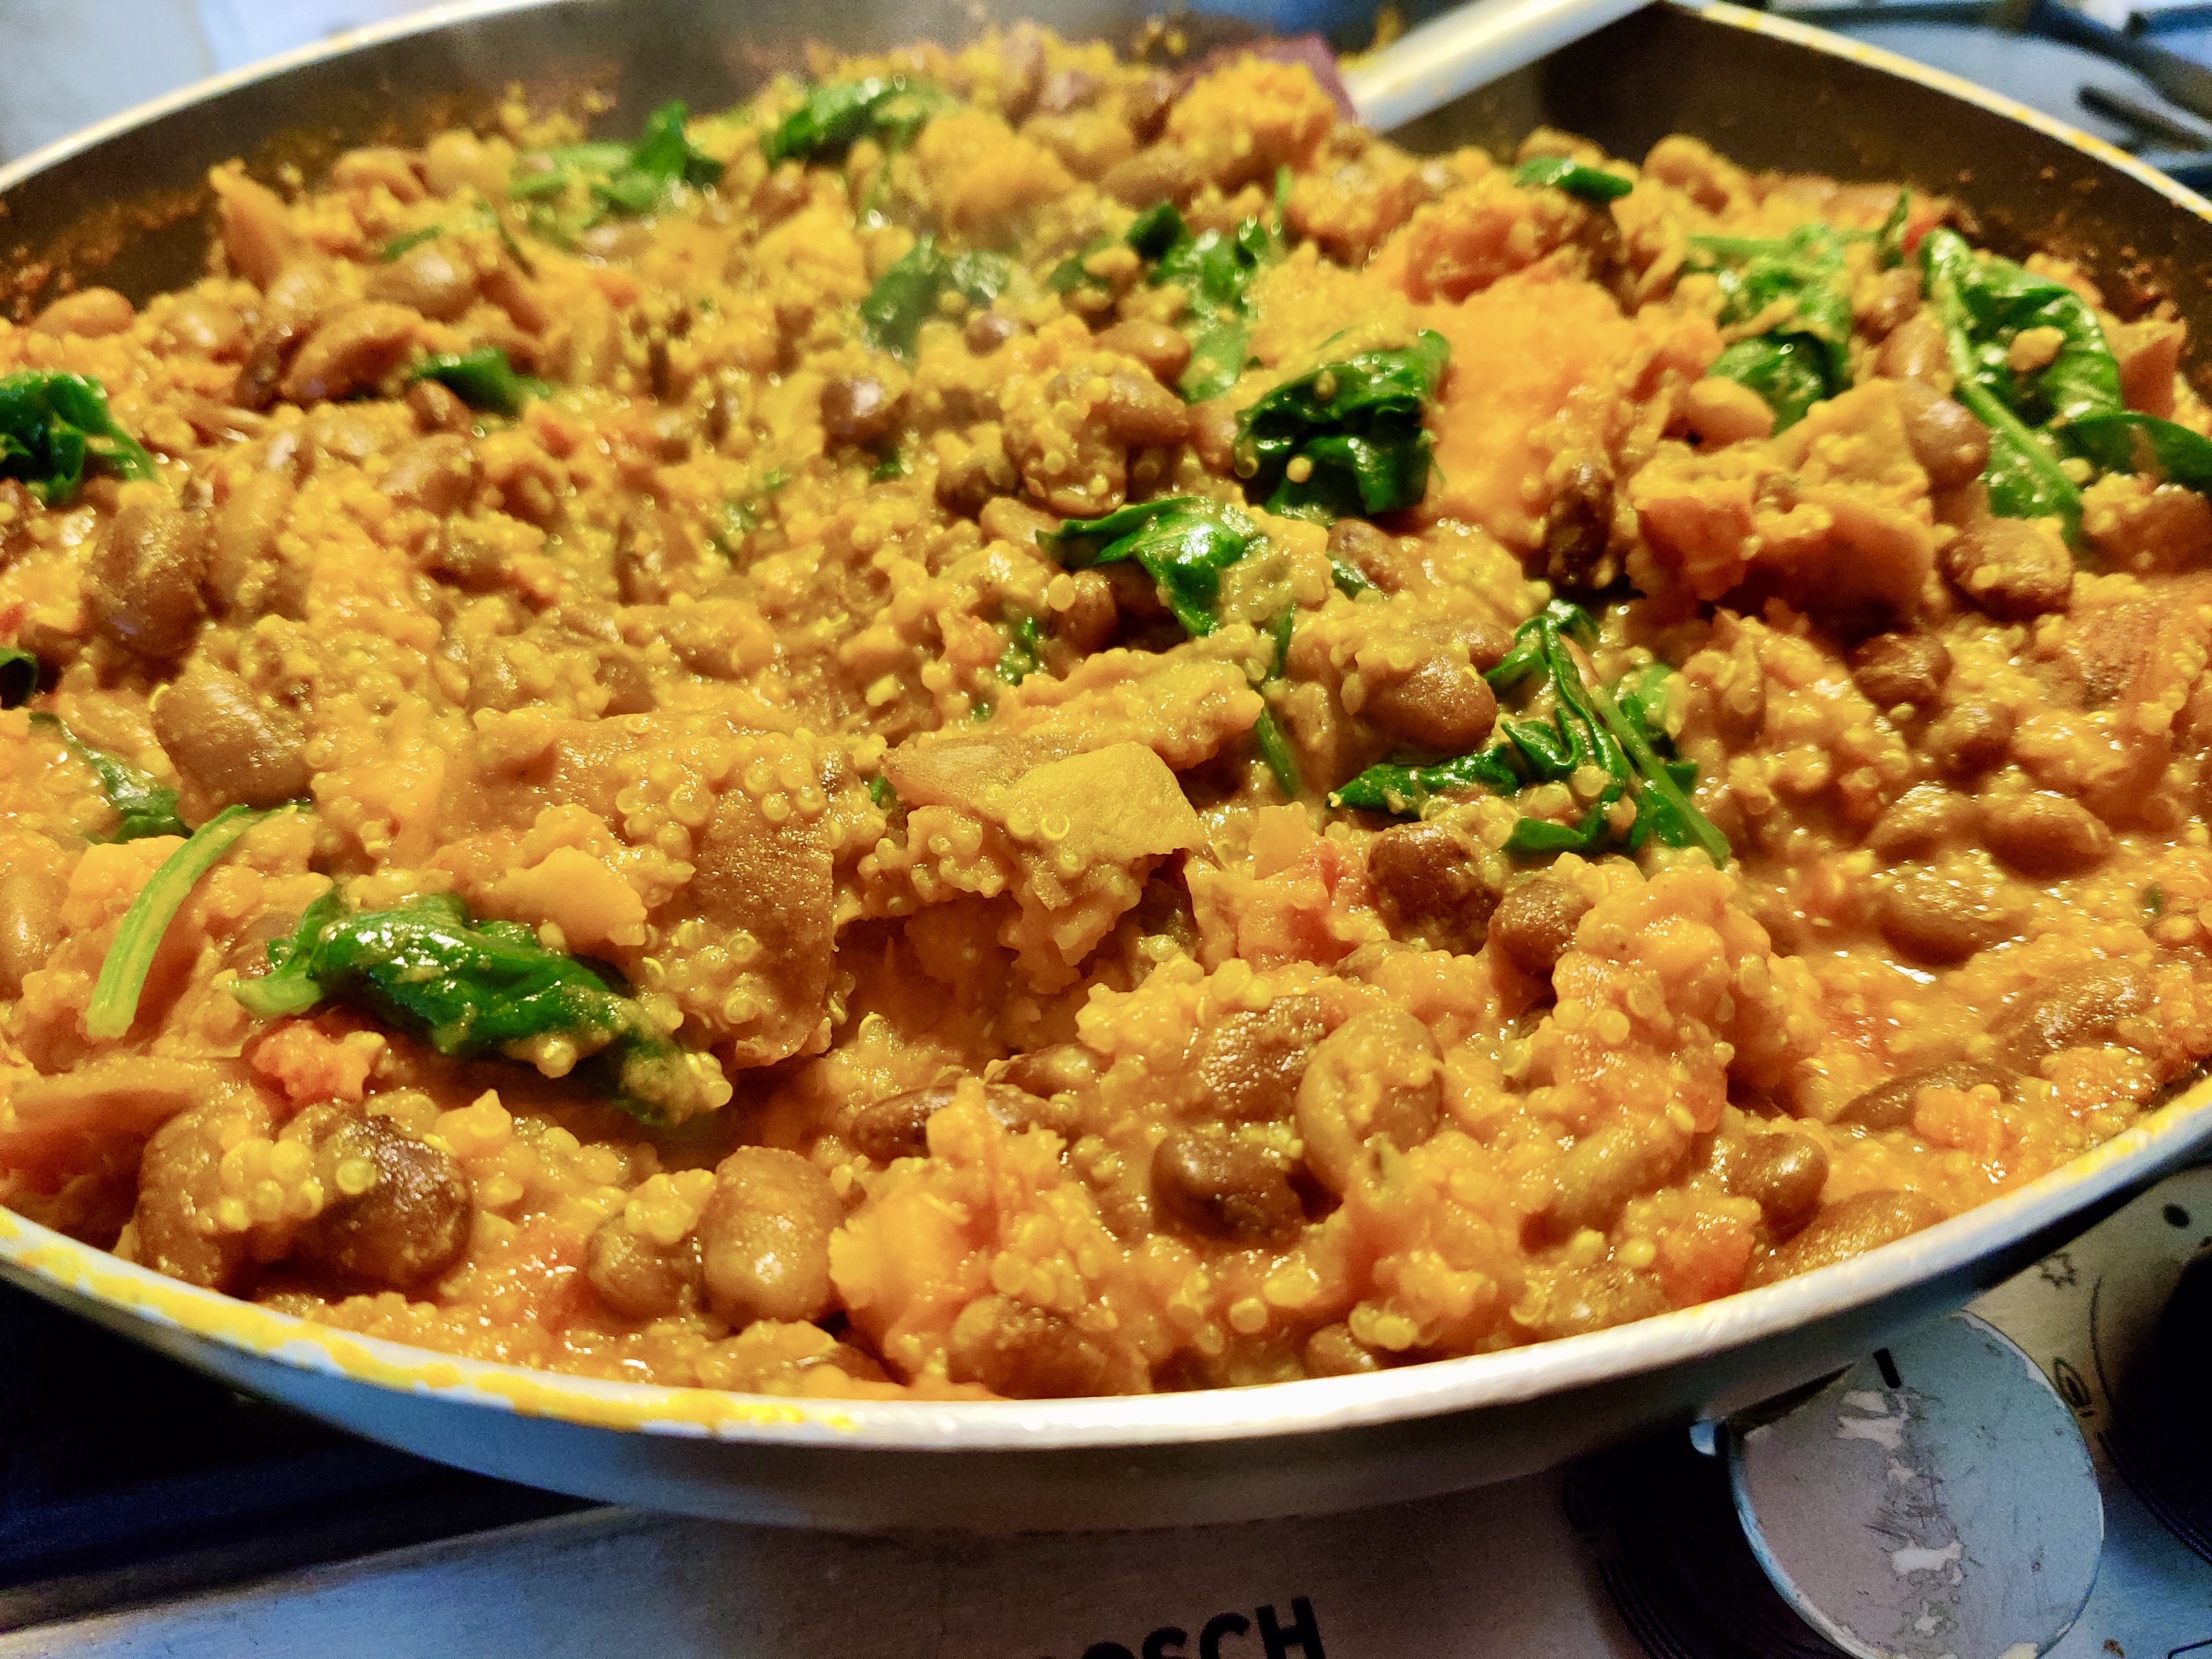 This pinto bean, quinoa and turmeric curry is dairy-free and gut-friendly.